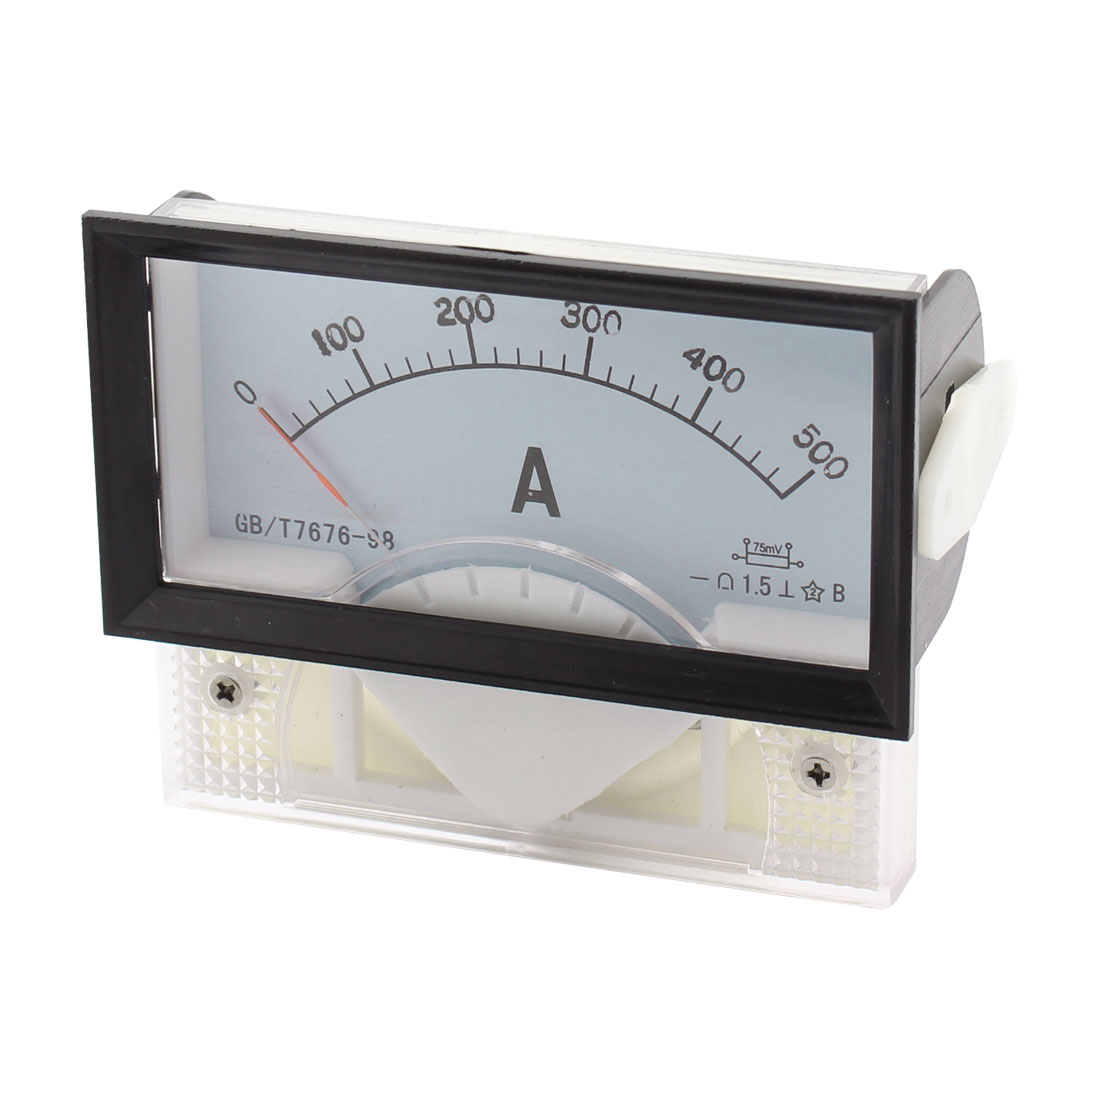 69C17 DC 0-500A Class 1.5 Rectangular Analog Panel Ammeter Gauge Amperemeter Meter